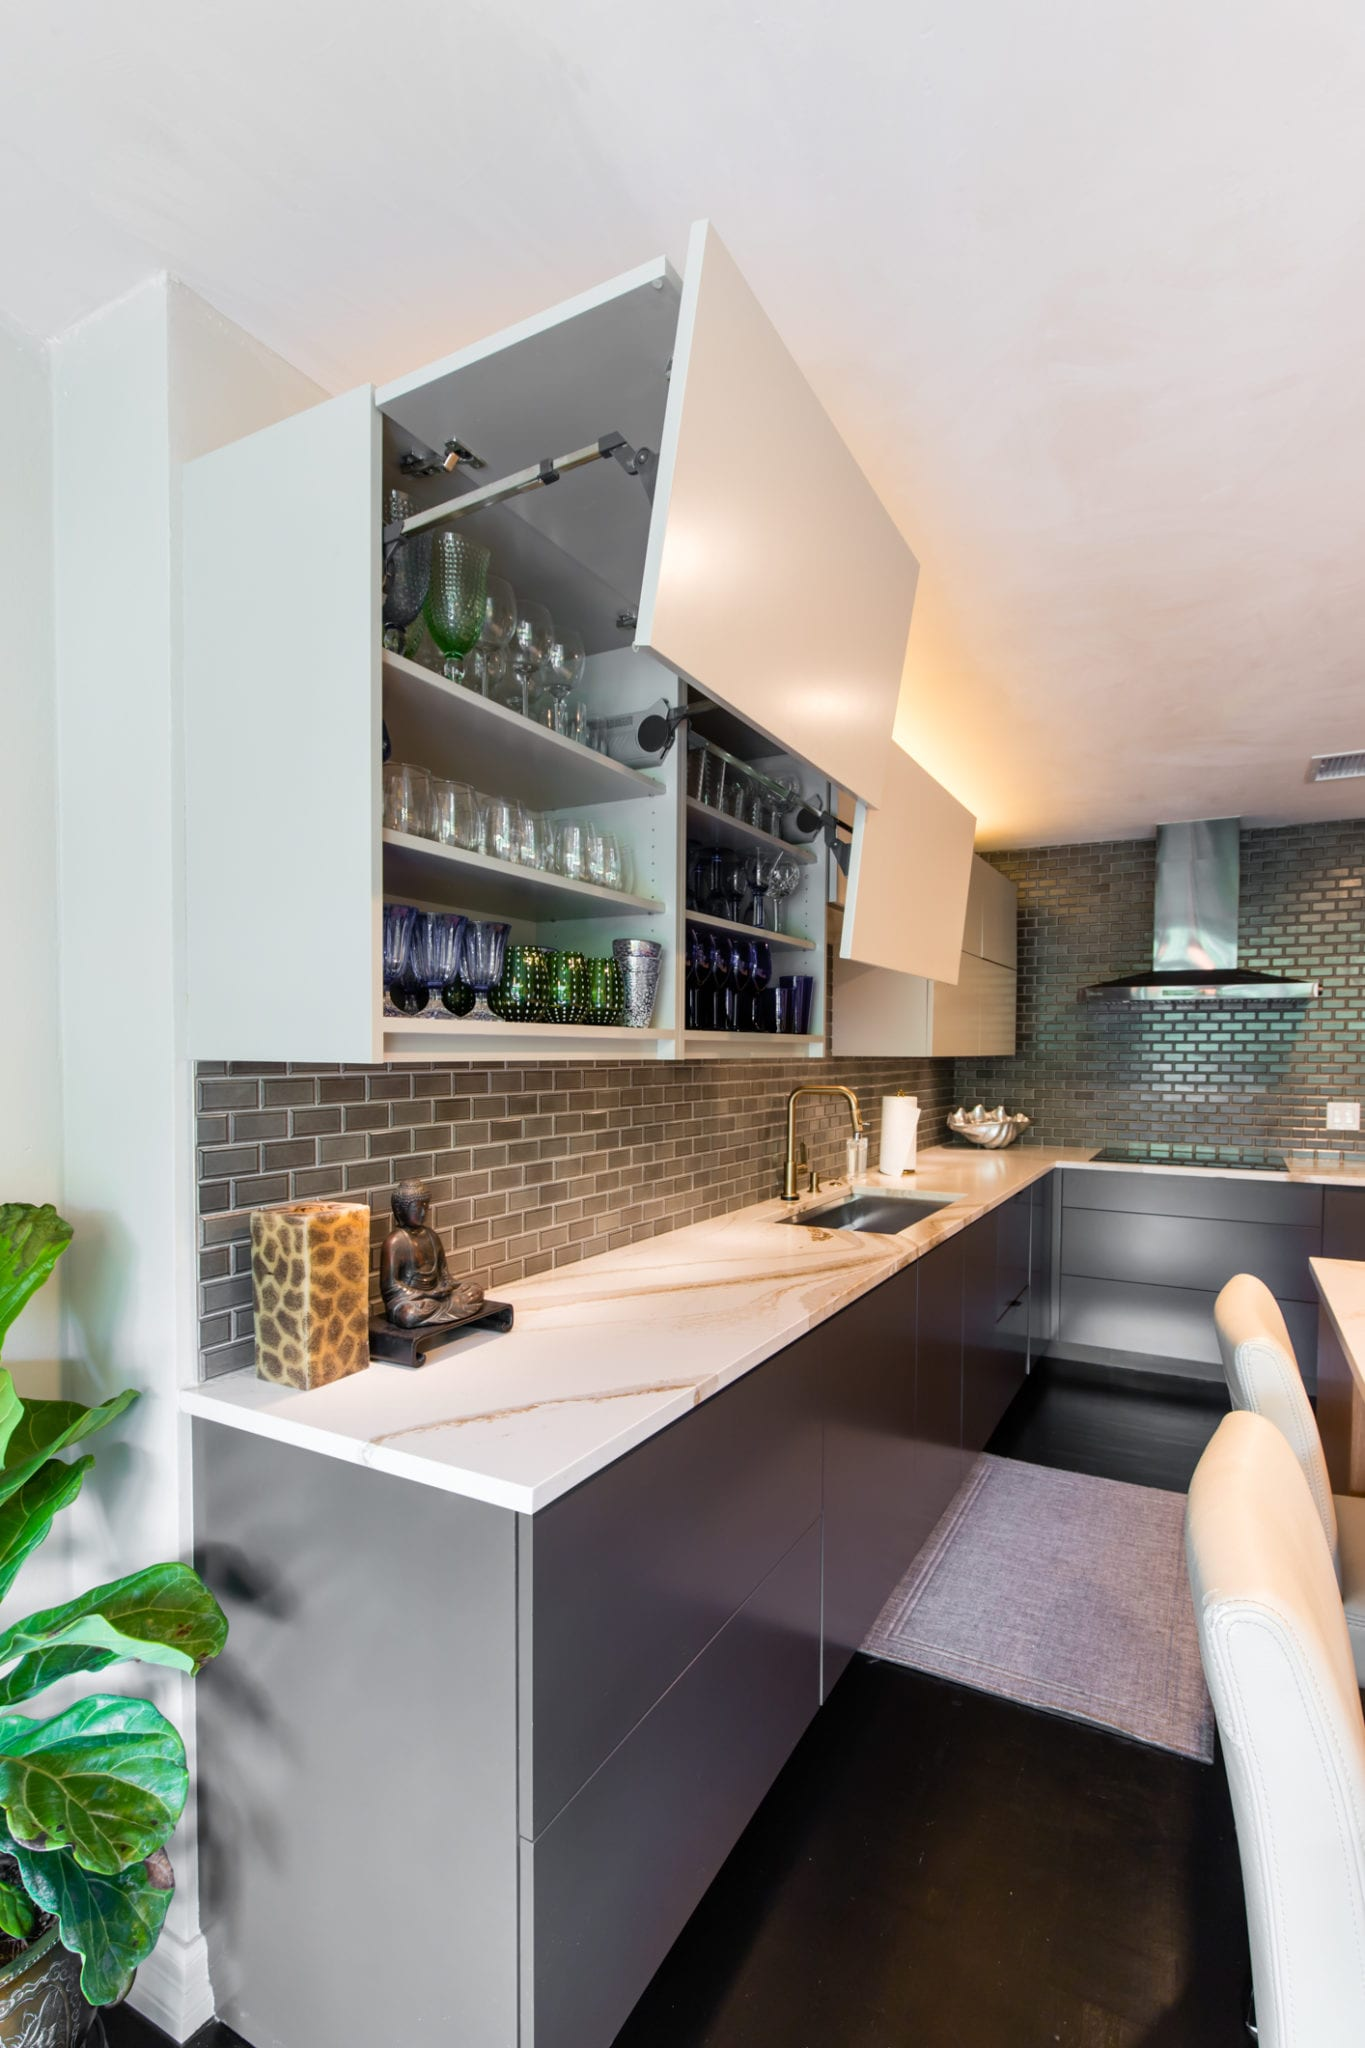 Kitchen-Cabinets-Lift-Up-Doors-Highland-Park-Plaza-Condo-After-Renowned-Renovation-Remodel_83